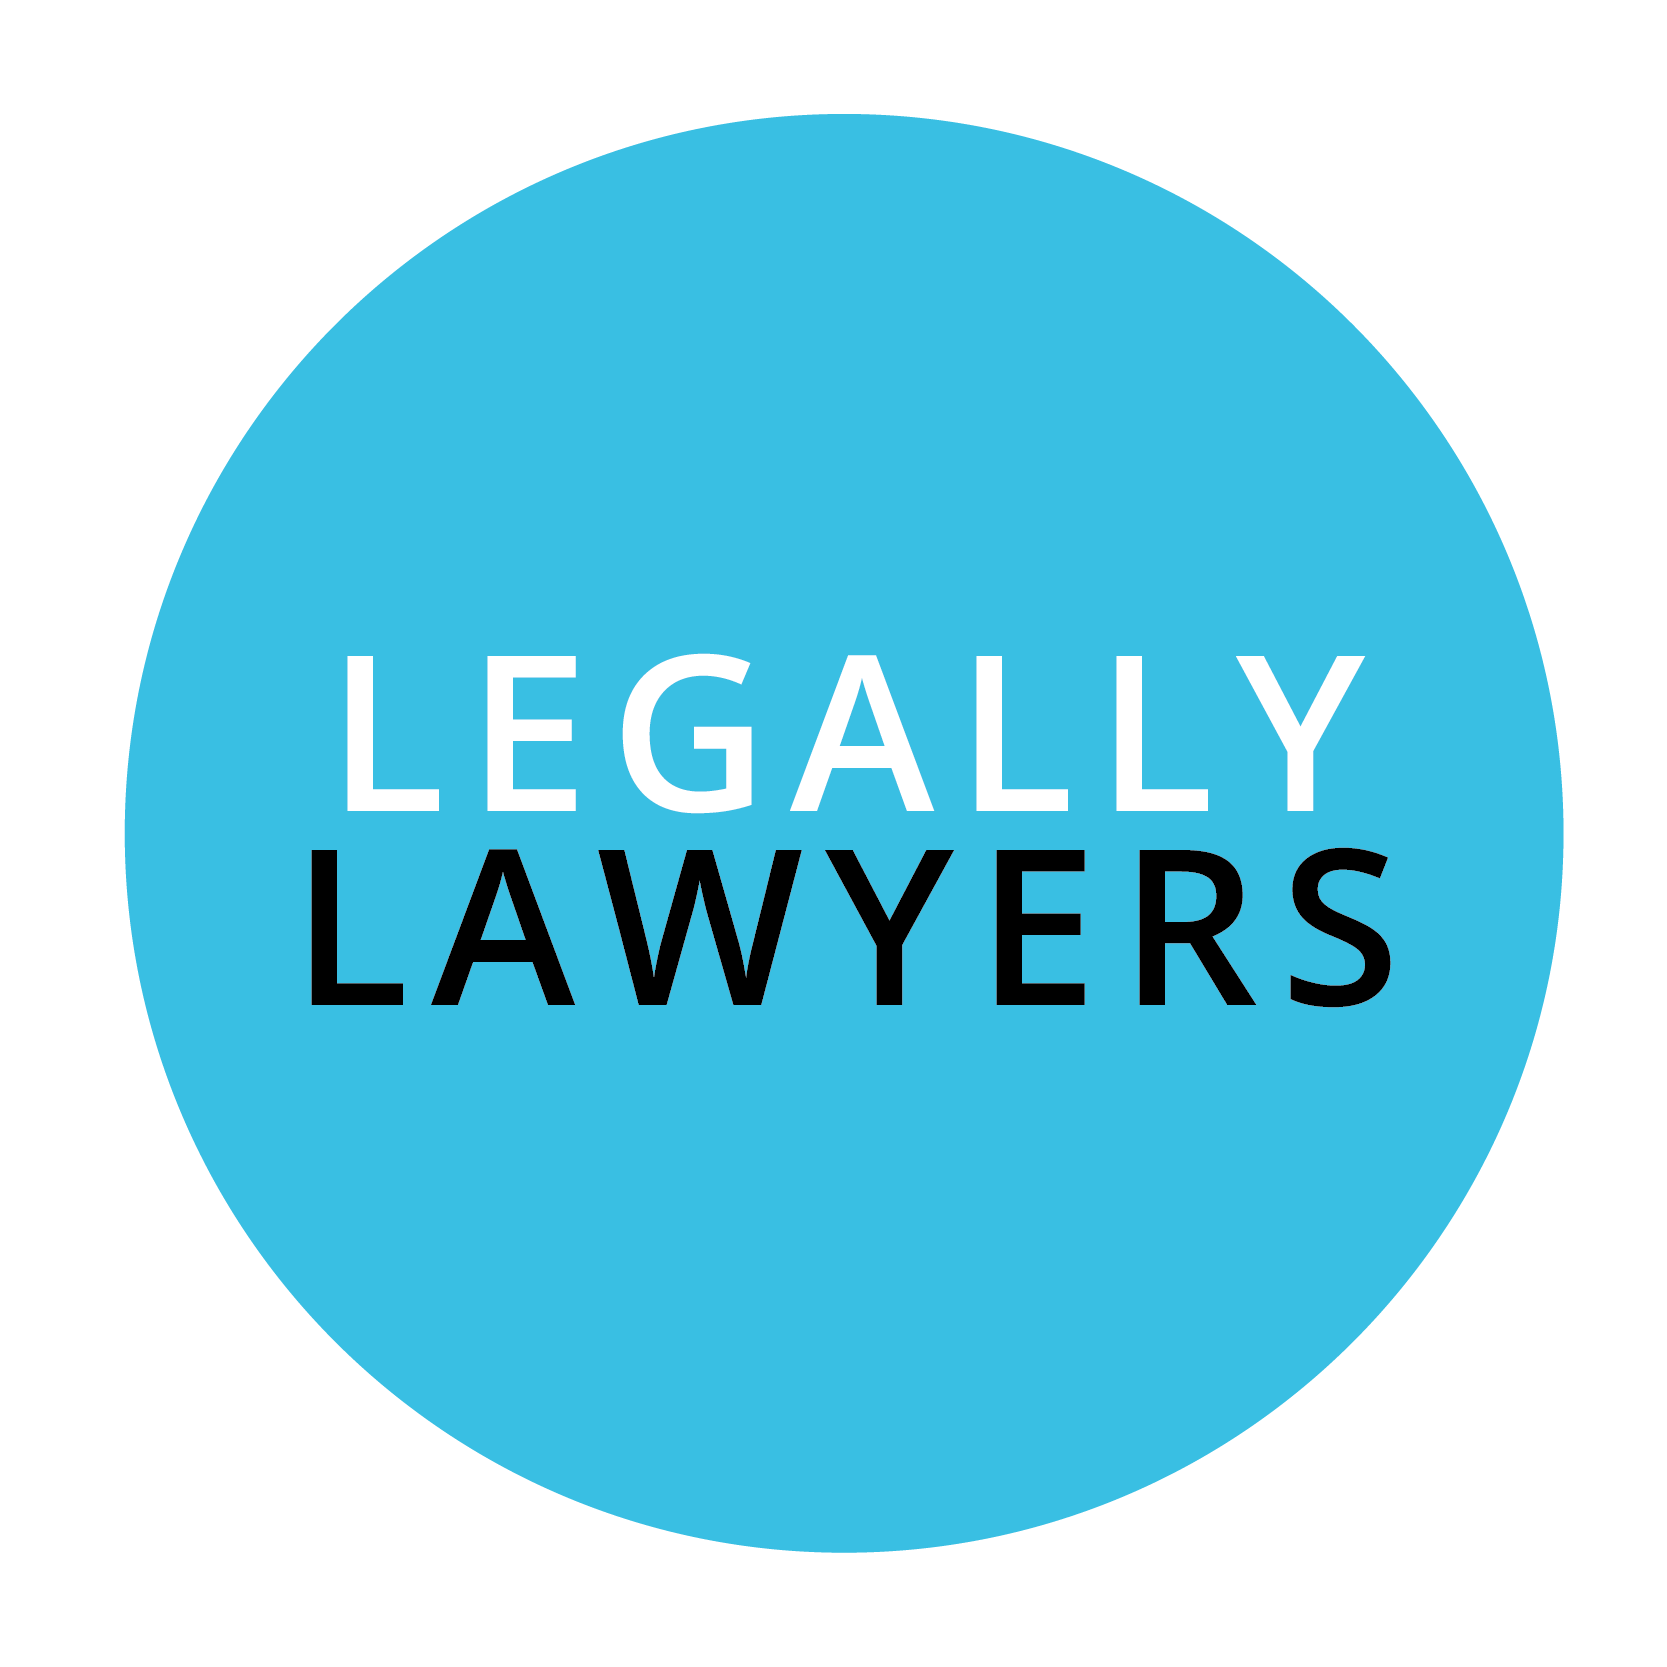 Legally Lawyers